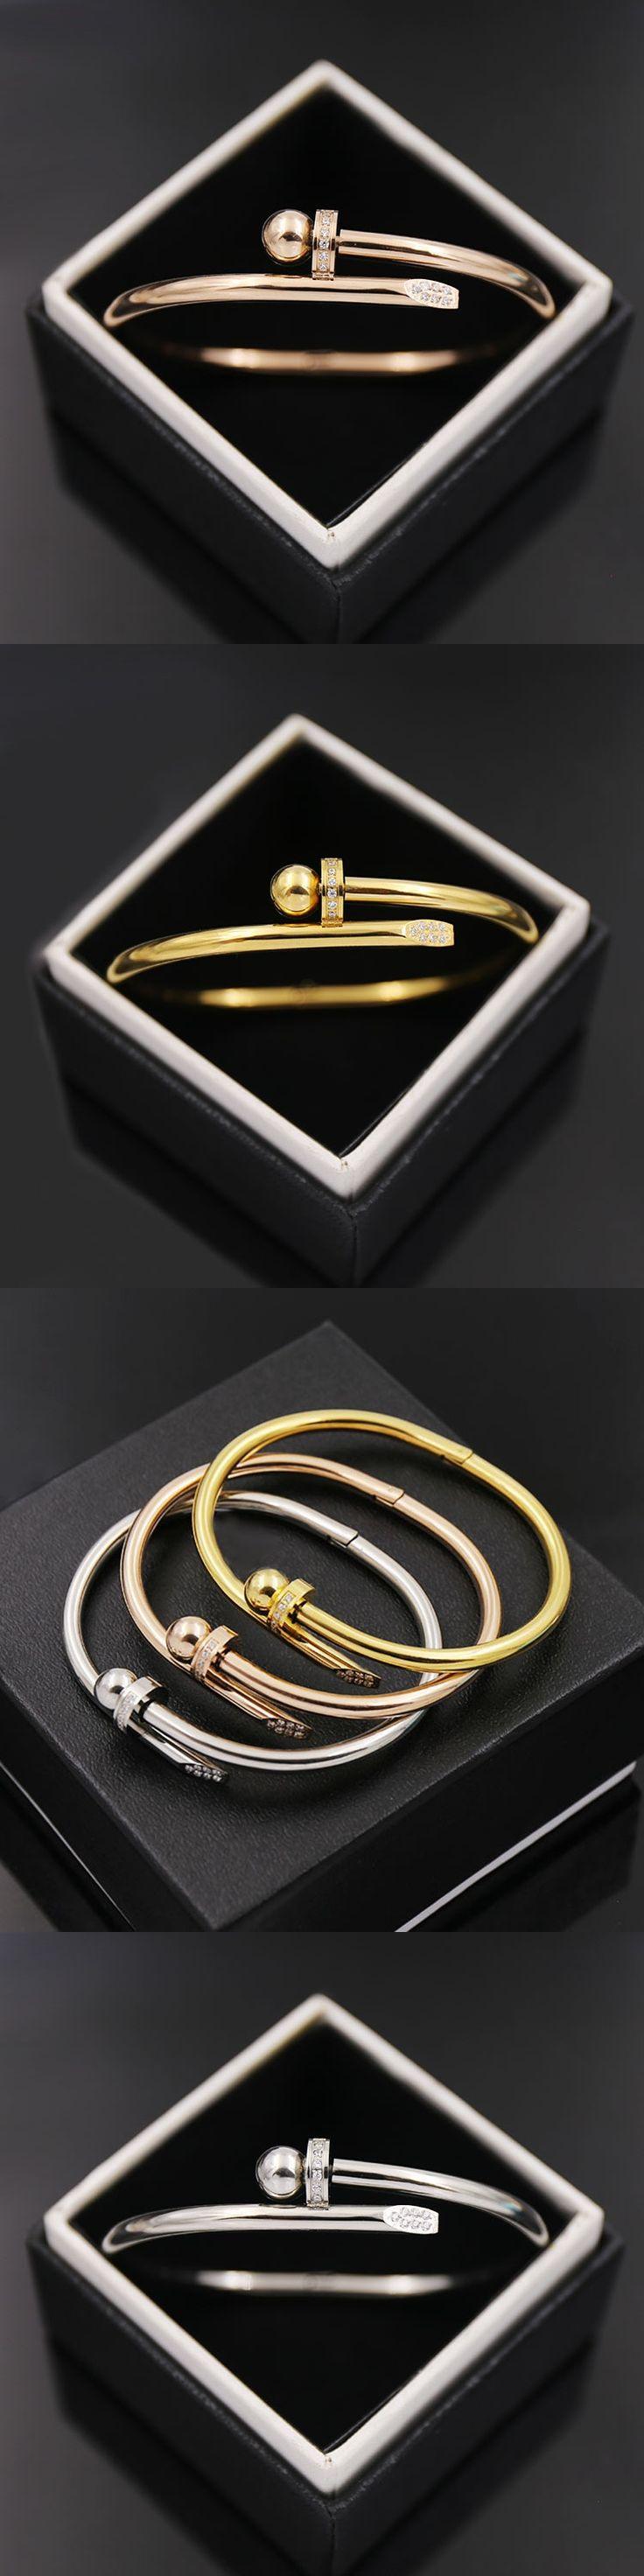 by bangle gold head nail oliver brandalley liv chloe embelished bracelet